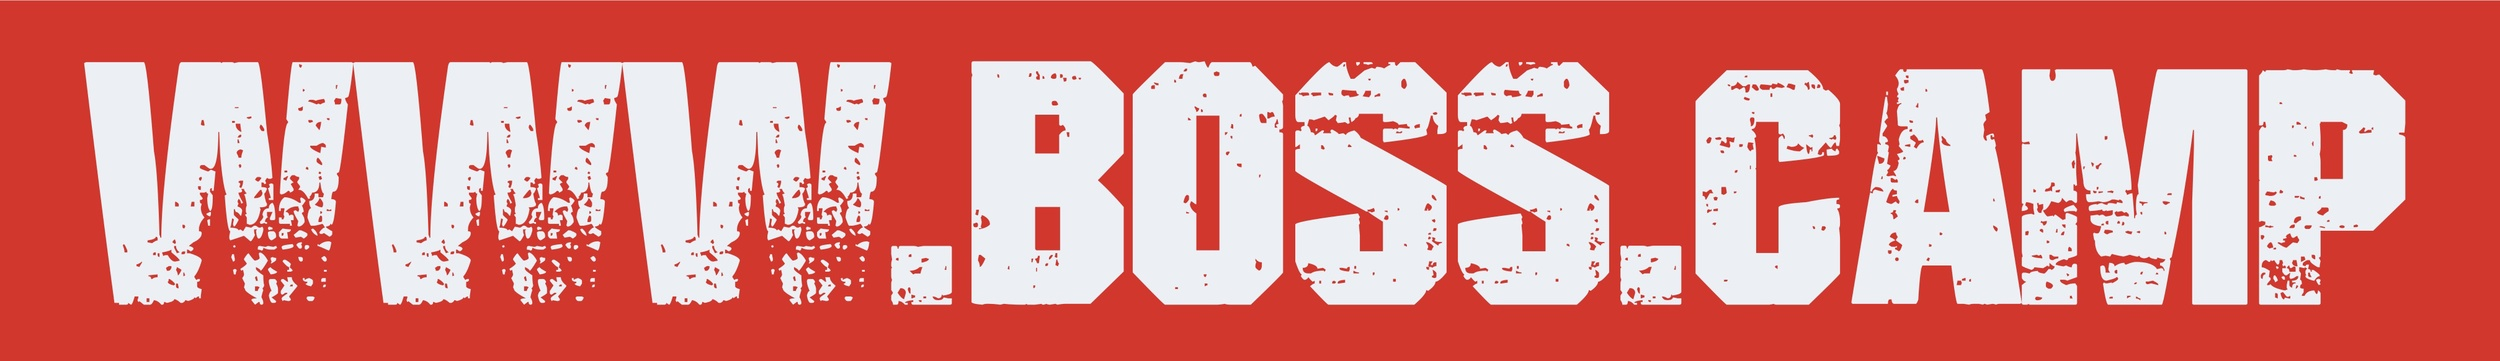 Discover proven management techniques to get better staff performance with www.boss.camp Jpeg